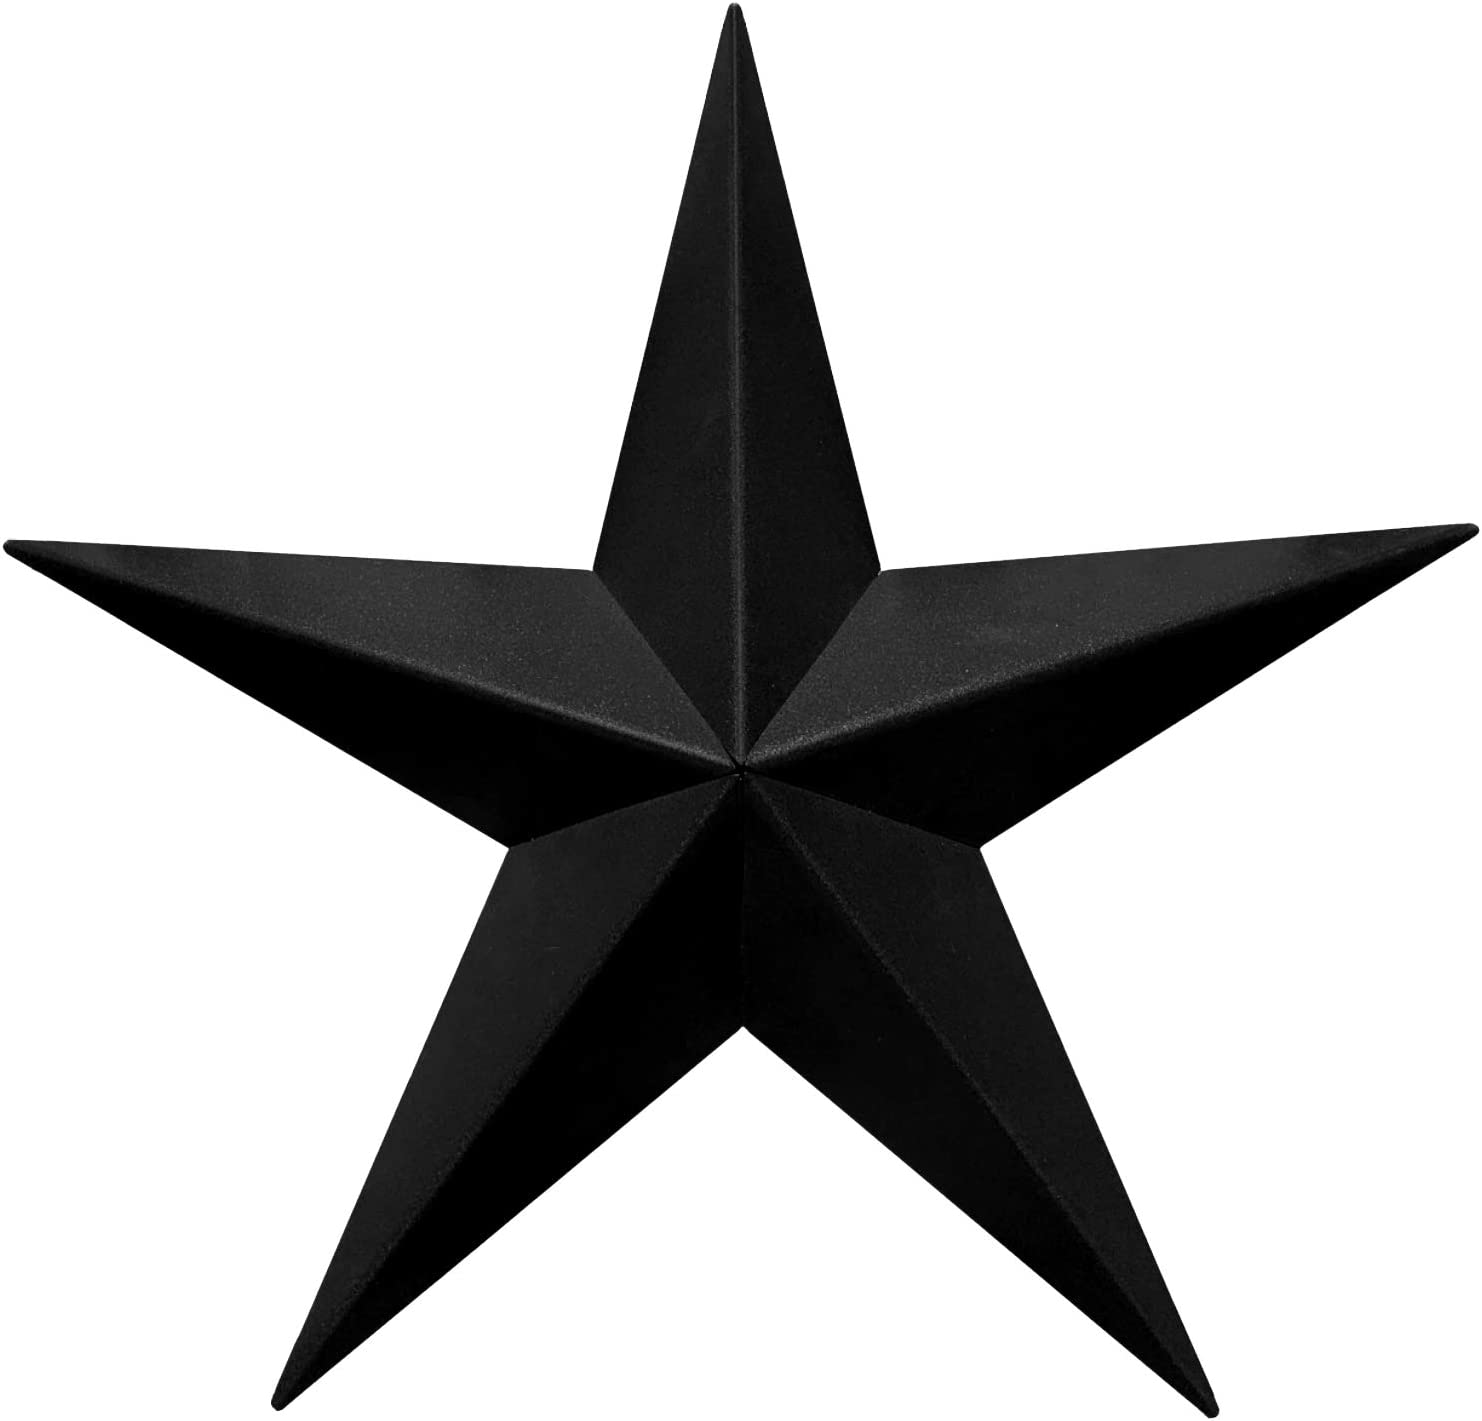 "EcoRise Black Barn Star – Star Wall Décor, Metal Stars for Outside or Inside of House, Iron Texas Metal Star Rustic Vintage Western Country Home Farmhouse Wall Art Decorations (22"")"